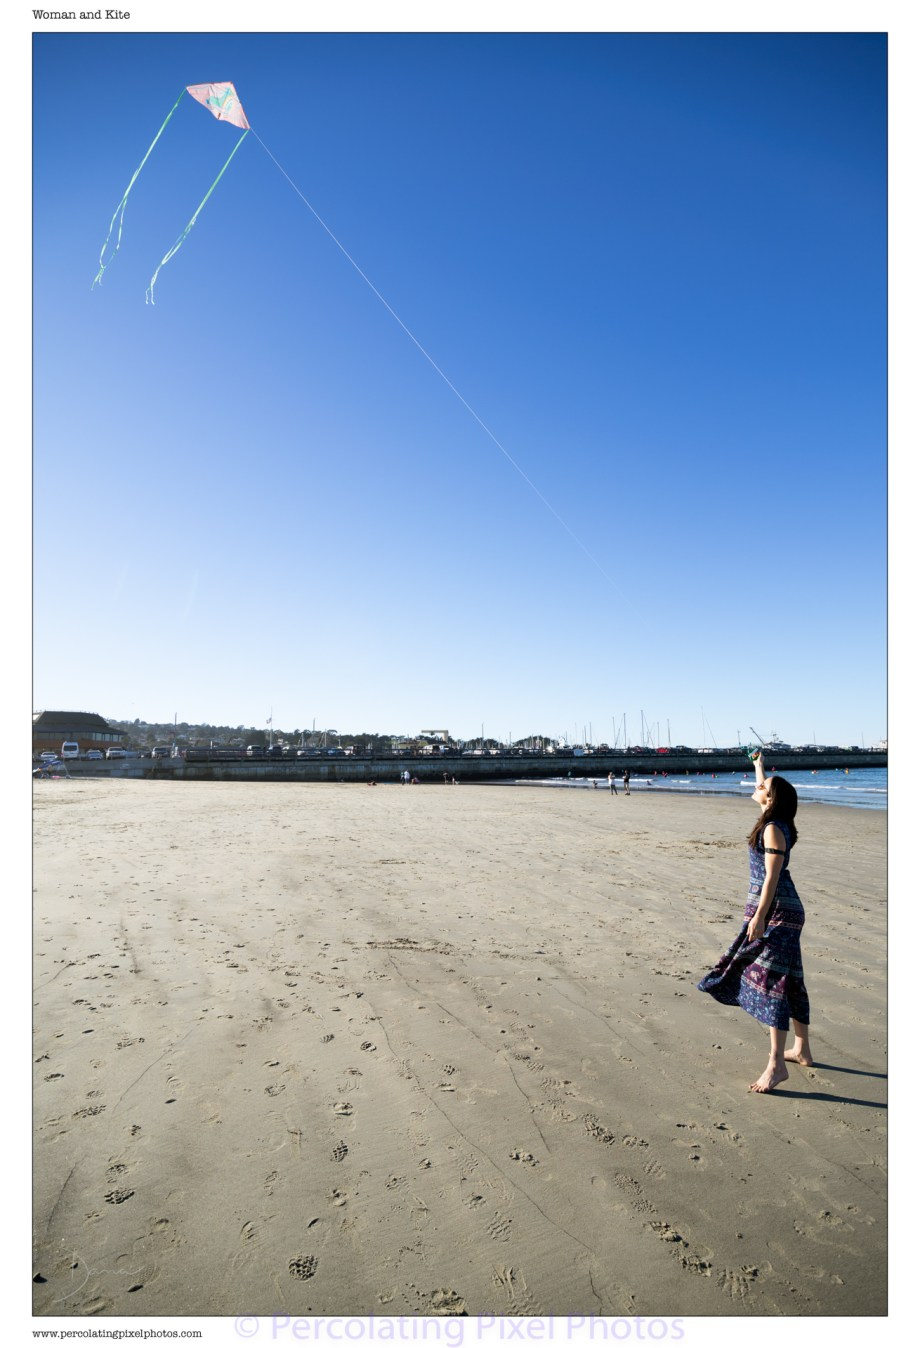 Woman and Kite on a Beach